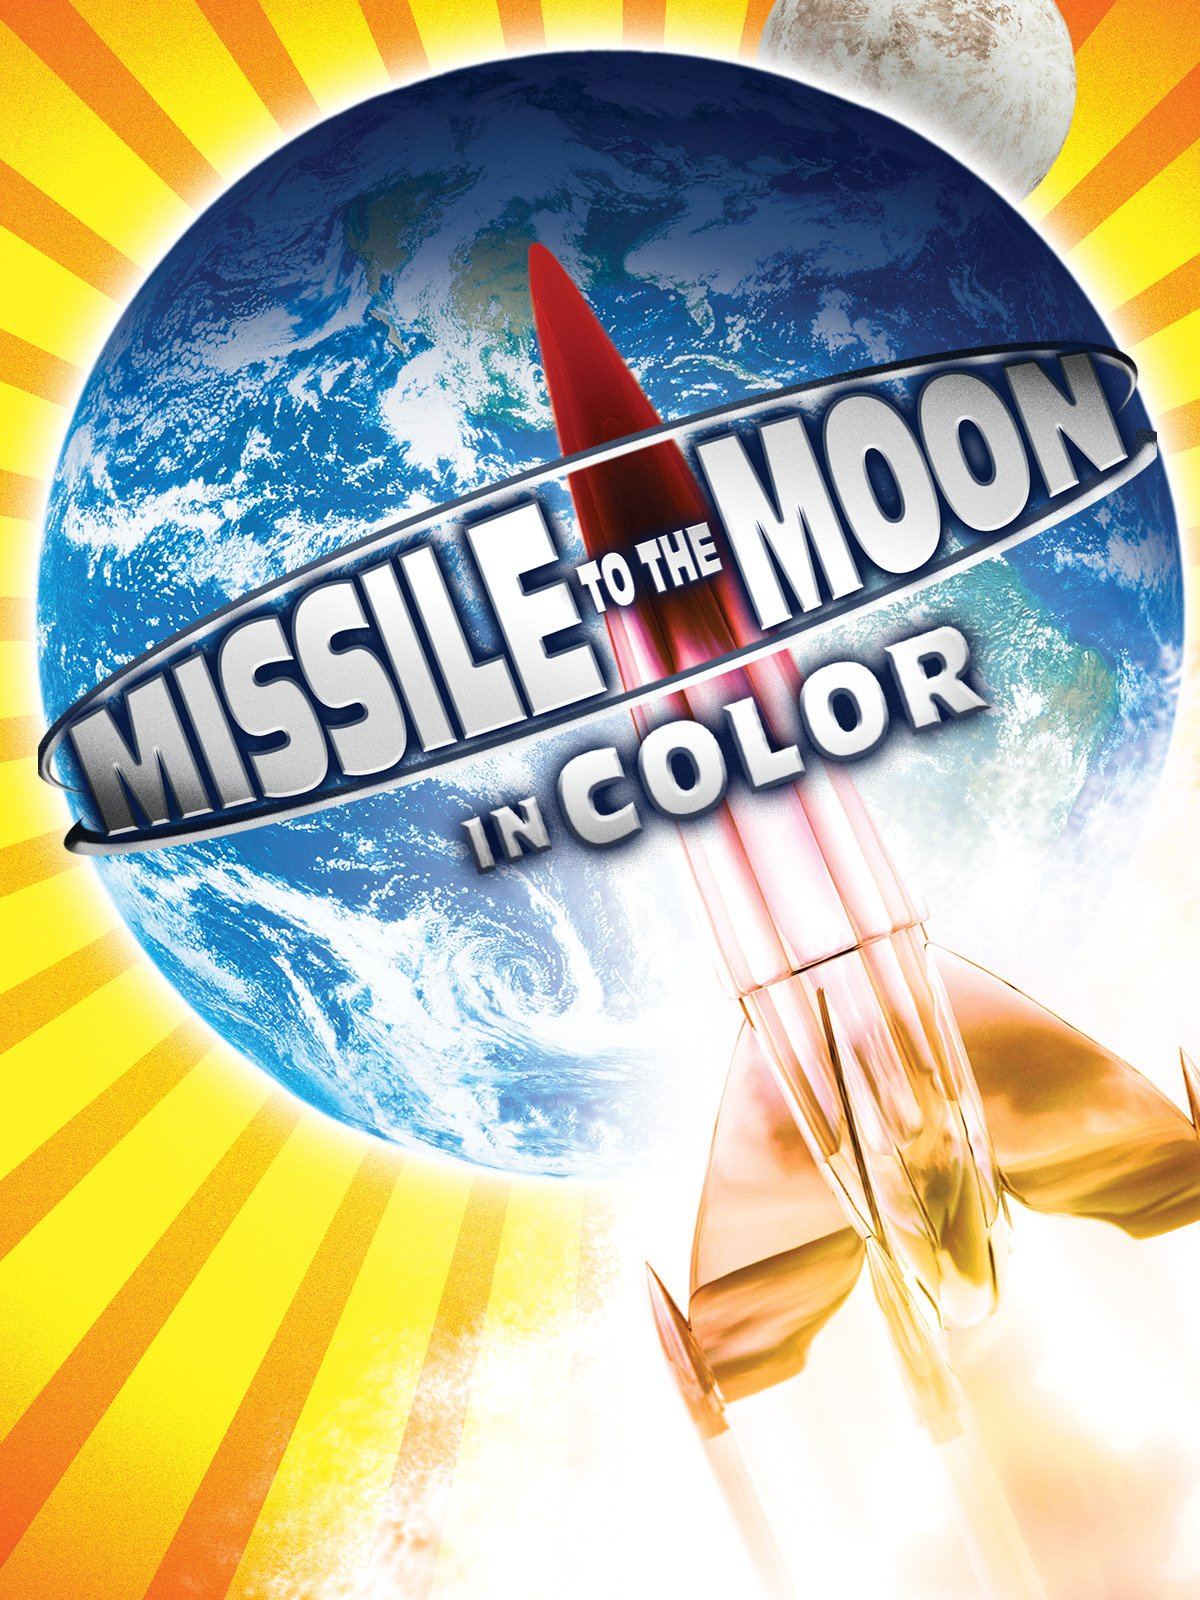 Missile To The Moon (In Color)